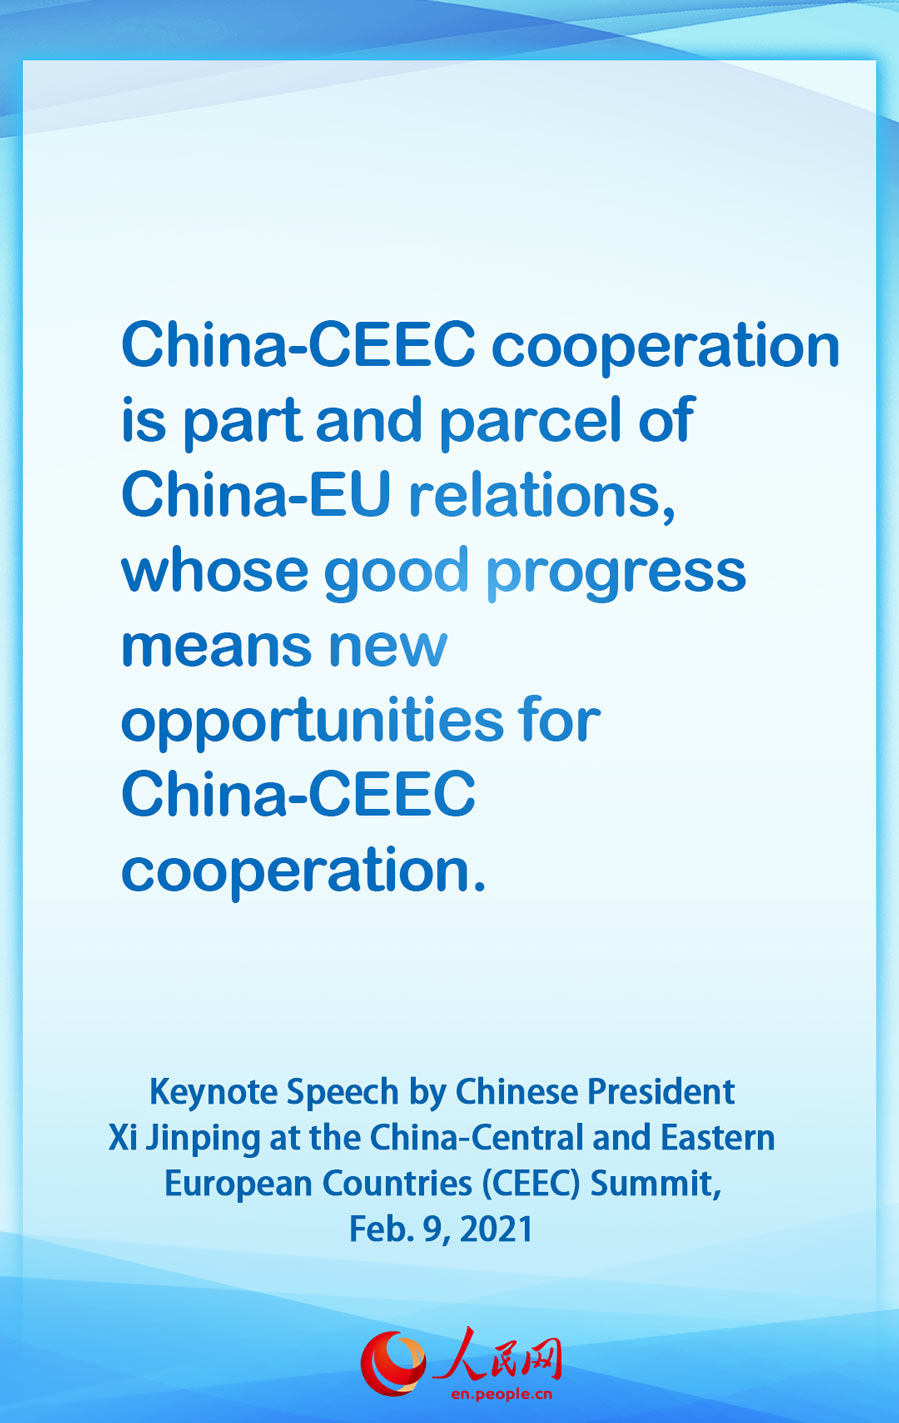 Highlights of the keynote speech by Chinese President Xi Jinping at the China-CEEC Summit